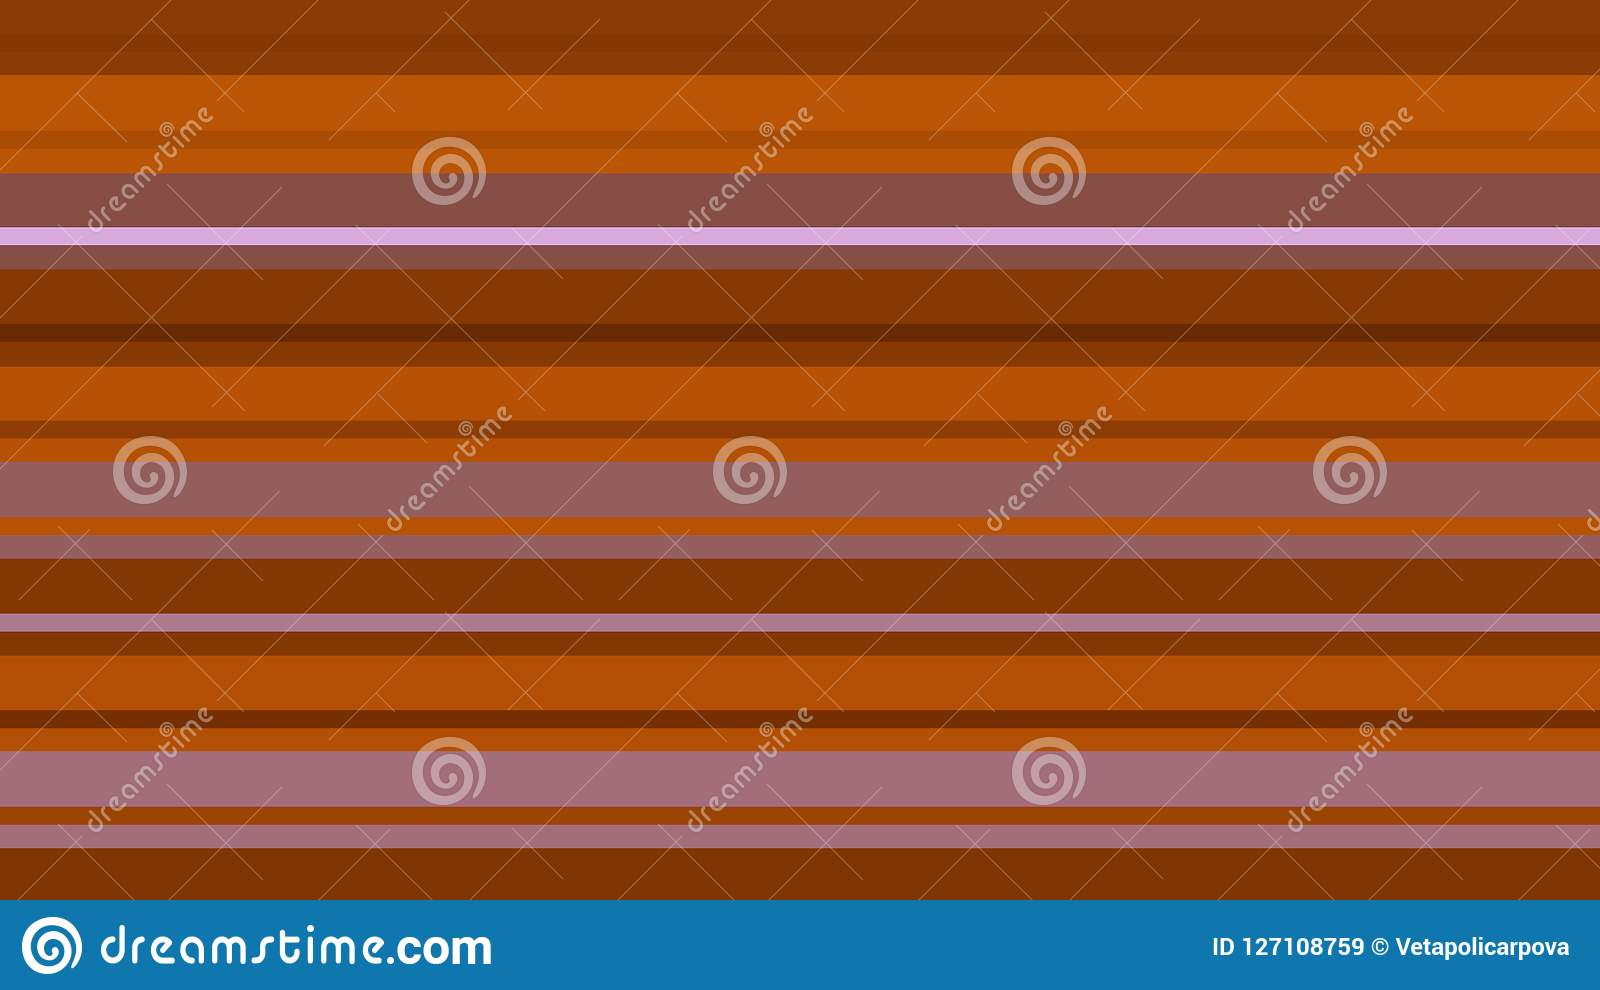 Background With Color Lines Different Shades And Thickness Stock Illustration Illustration Of Texture Backgrounds 127108759